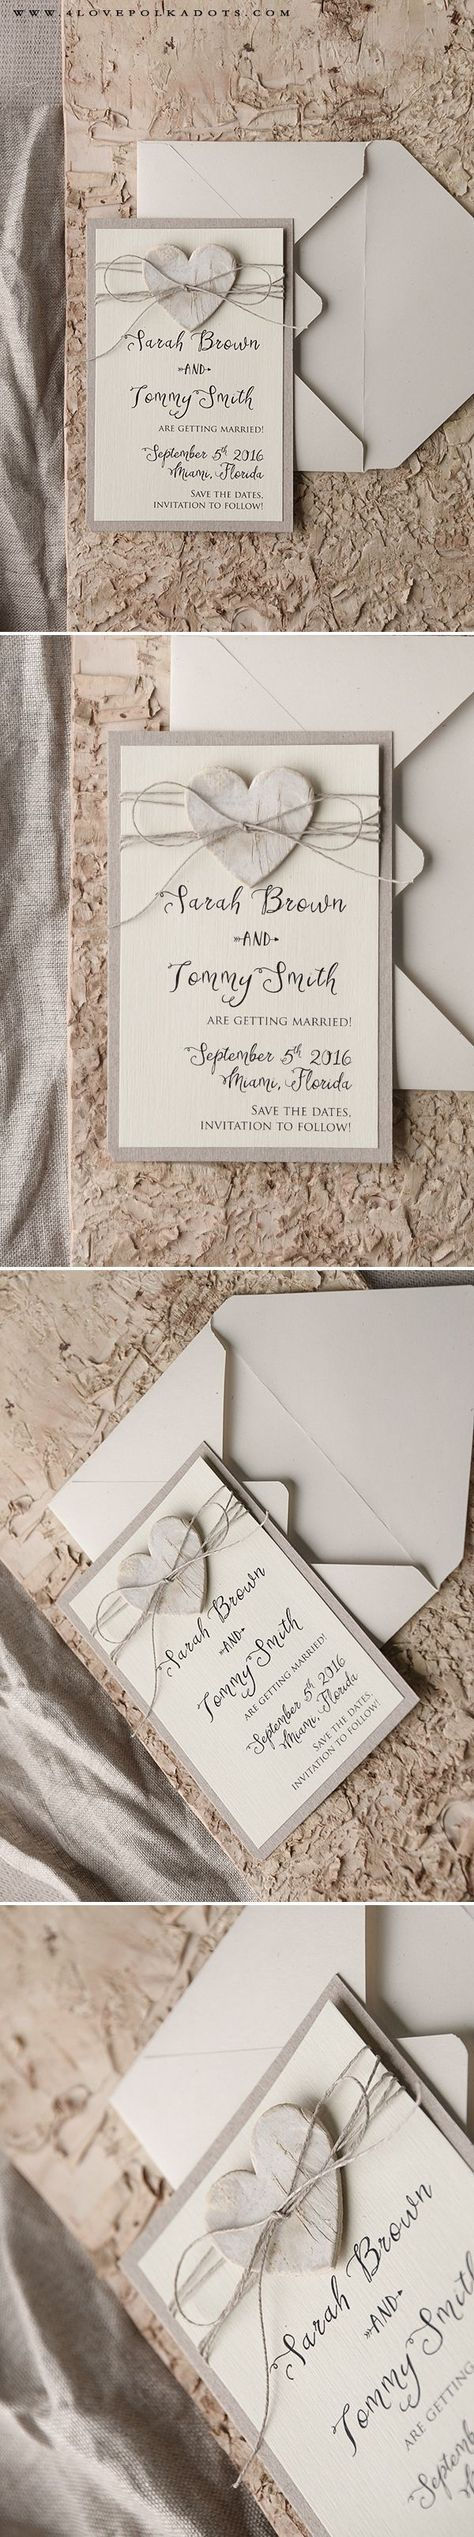 Save the Date Card with Birch Bark